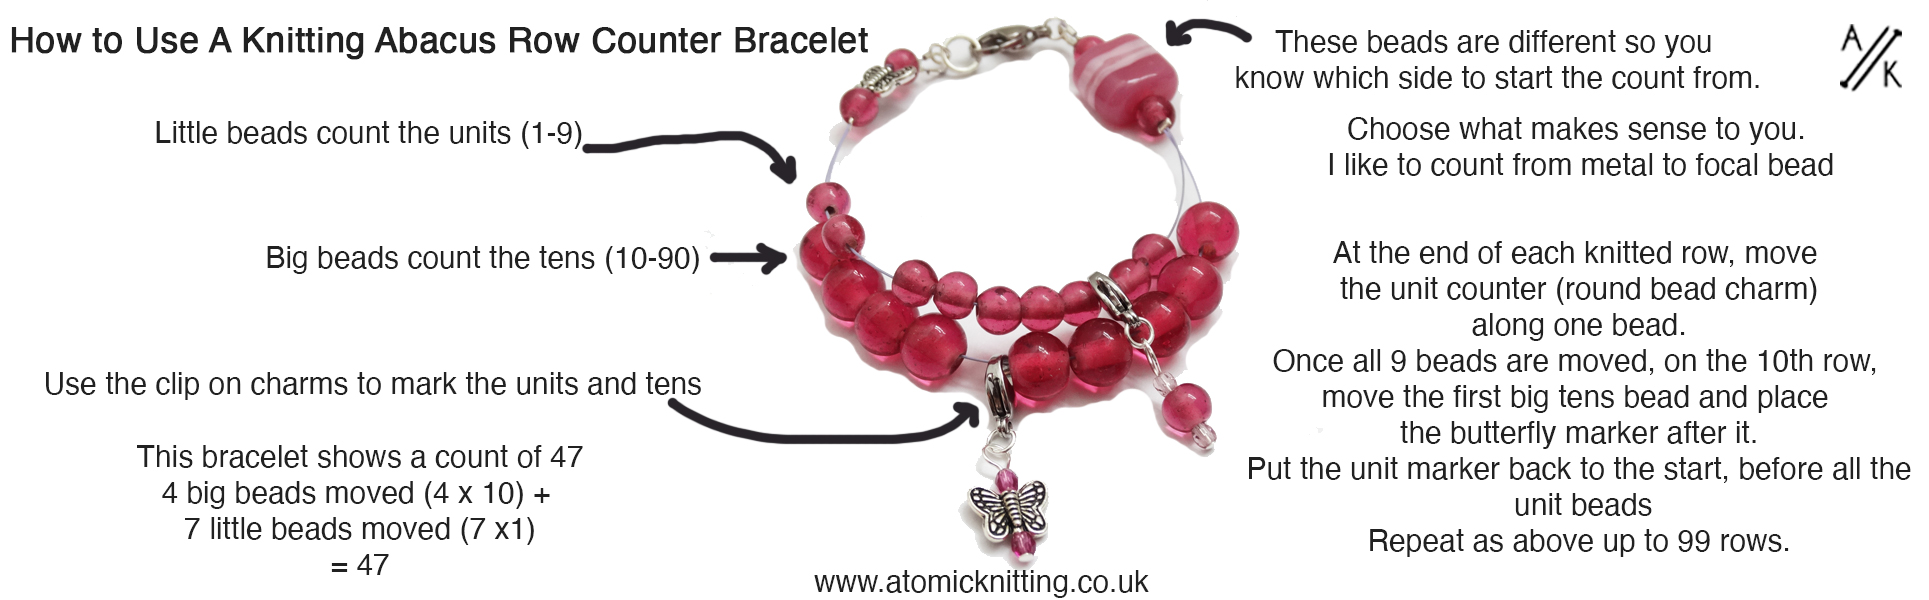 How to use an abacus row counter bracelet in knitting